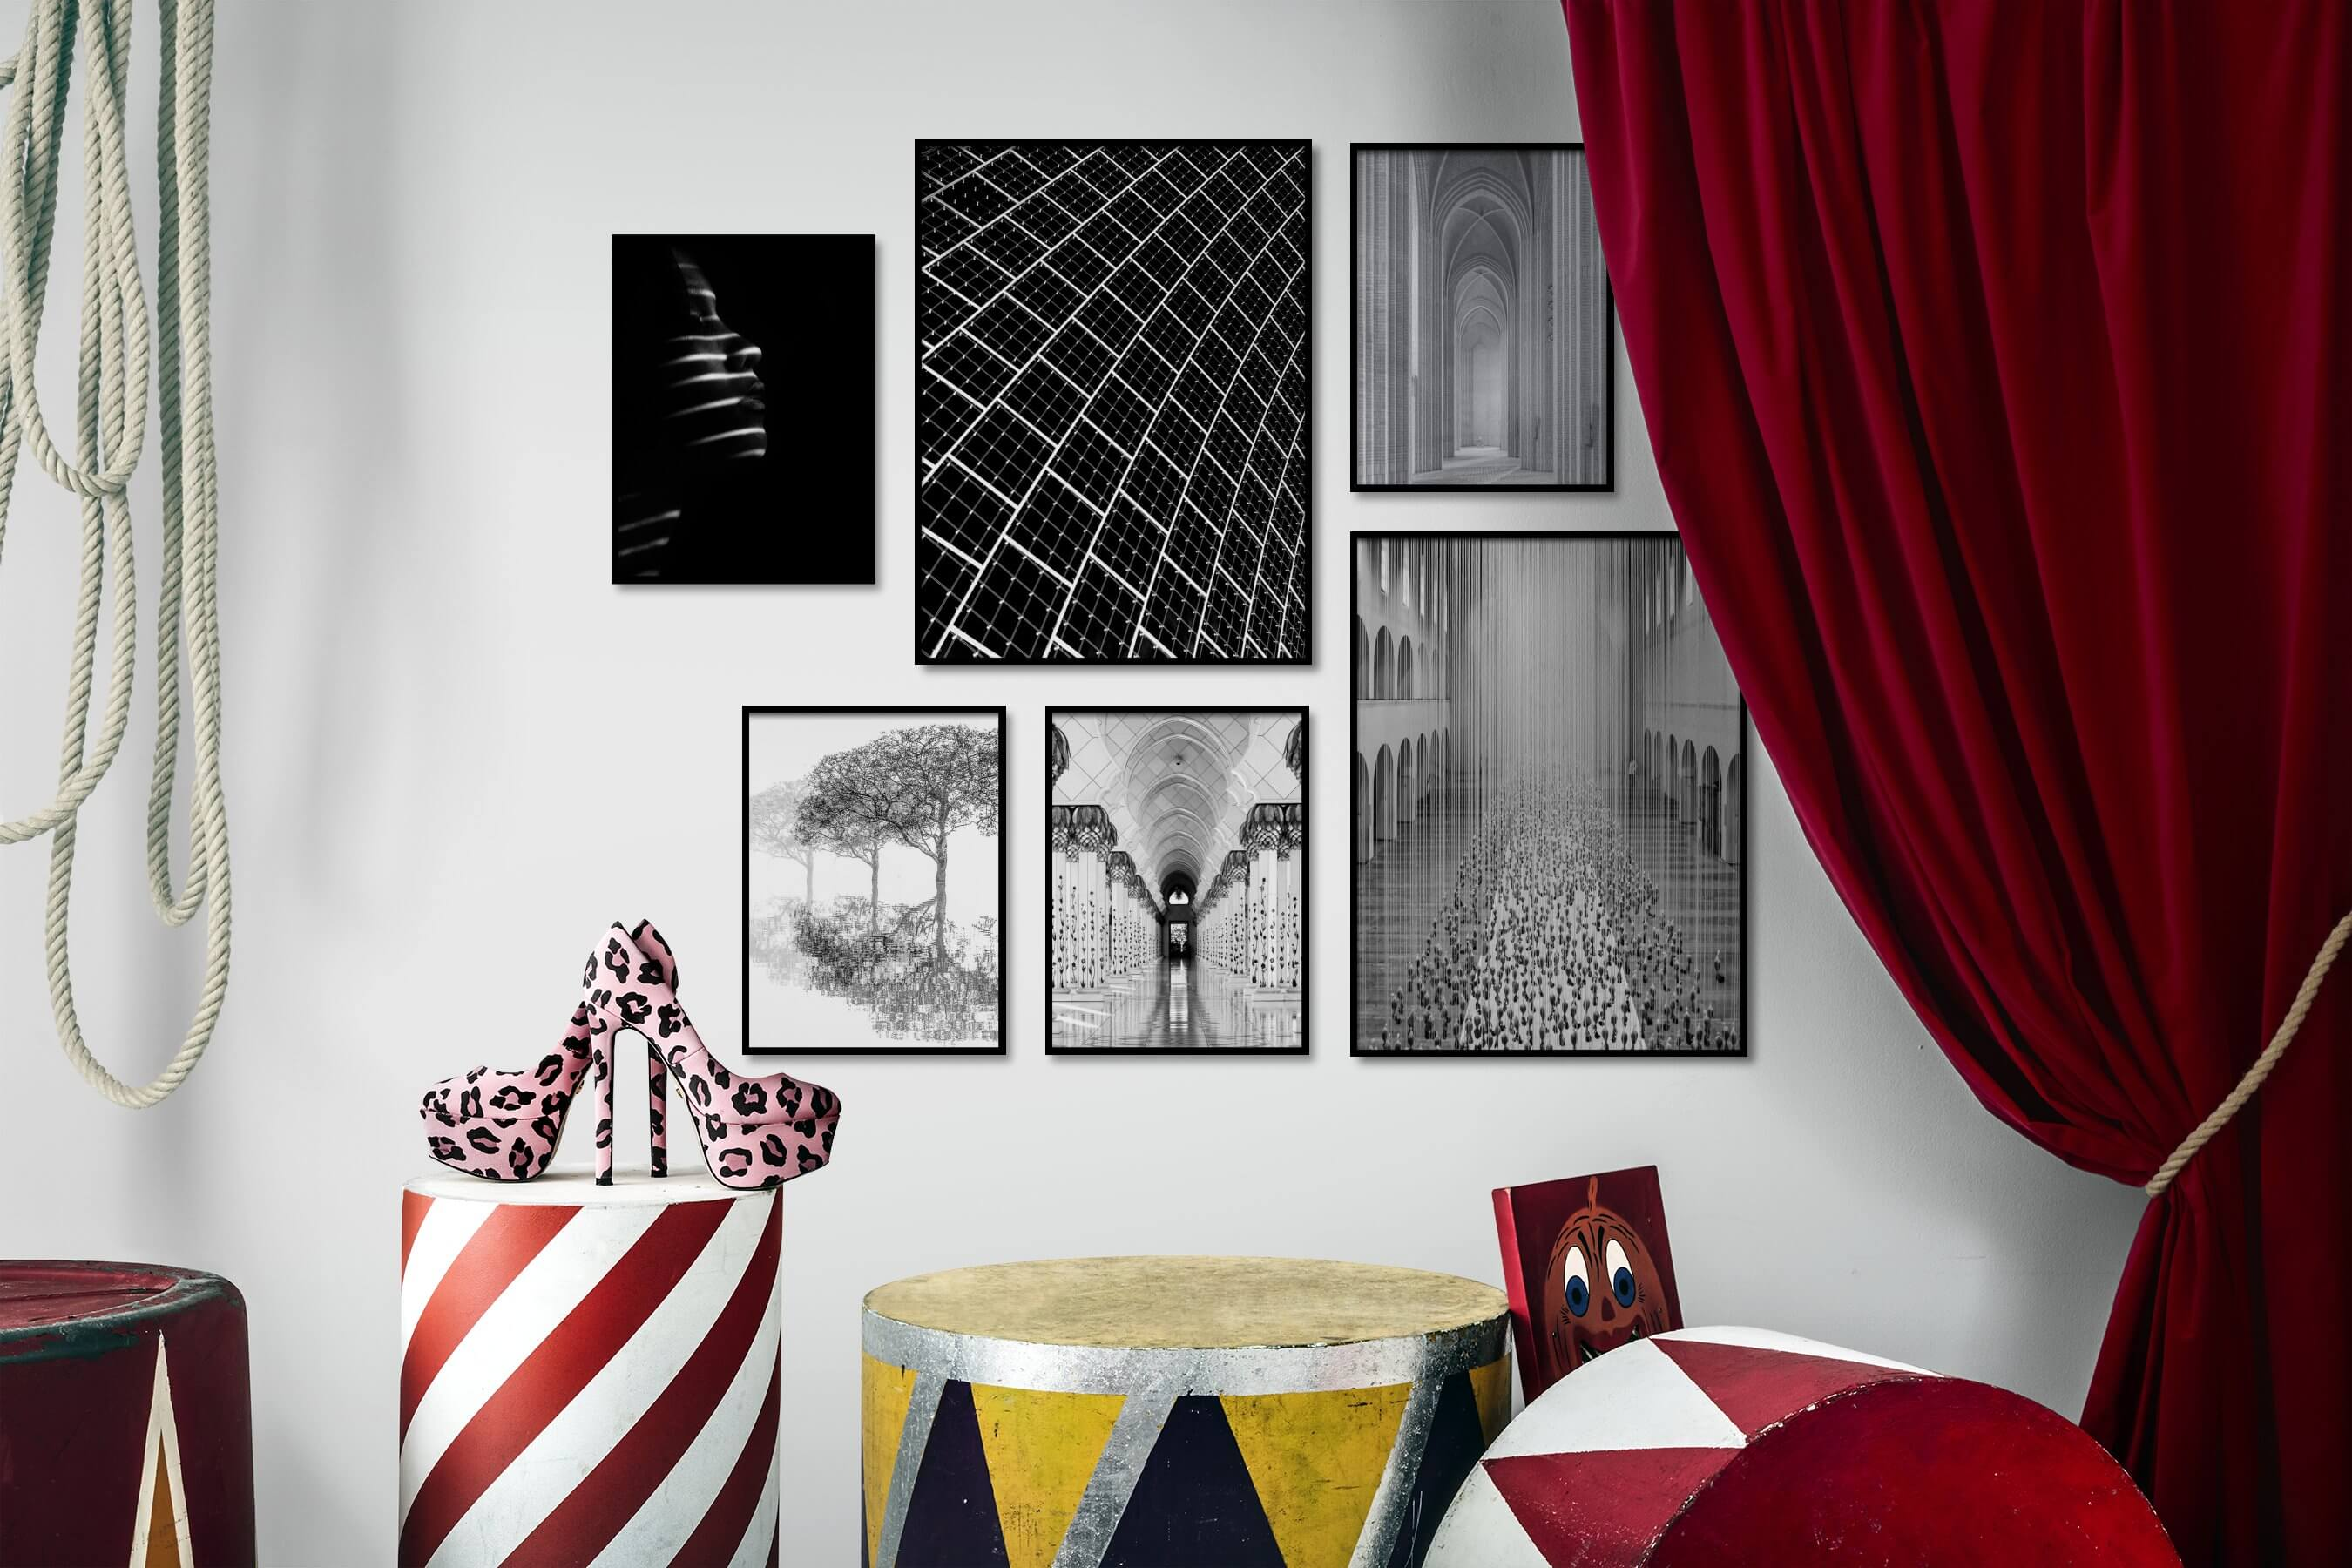 Gallery wall idea with six framed pictures arranged on a wall depicting Fashion & Beauty, Black & White, Dark Tones, For the Minimalist, For the Maximalist, Bright Tones, For the Moderate, Nature, and Mindfulness